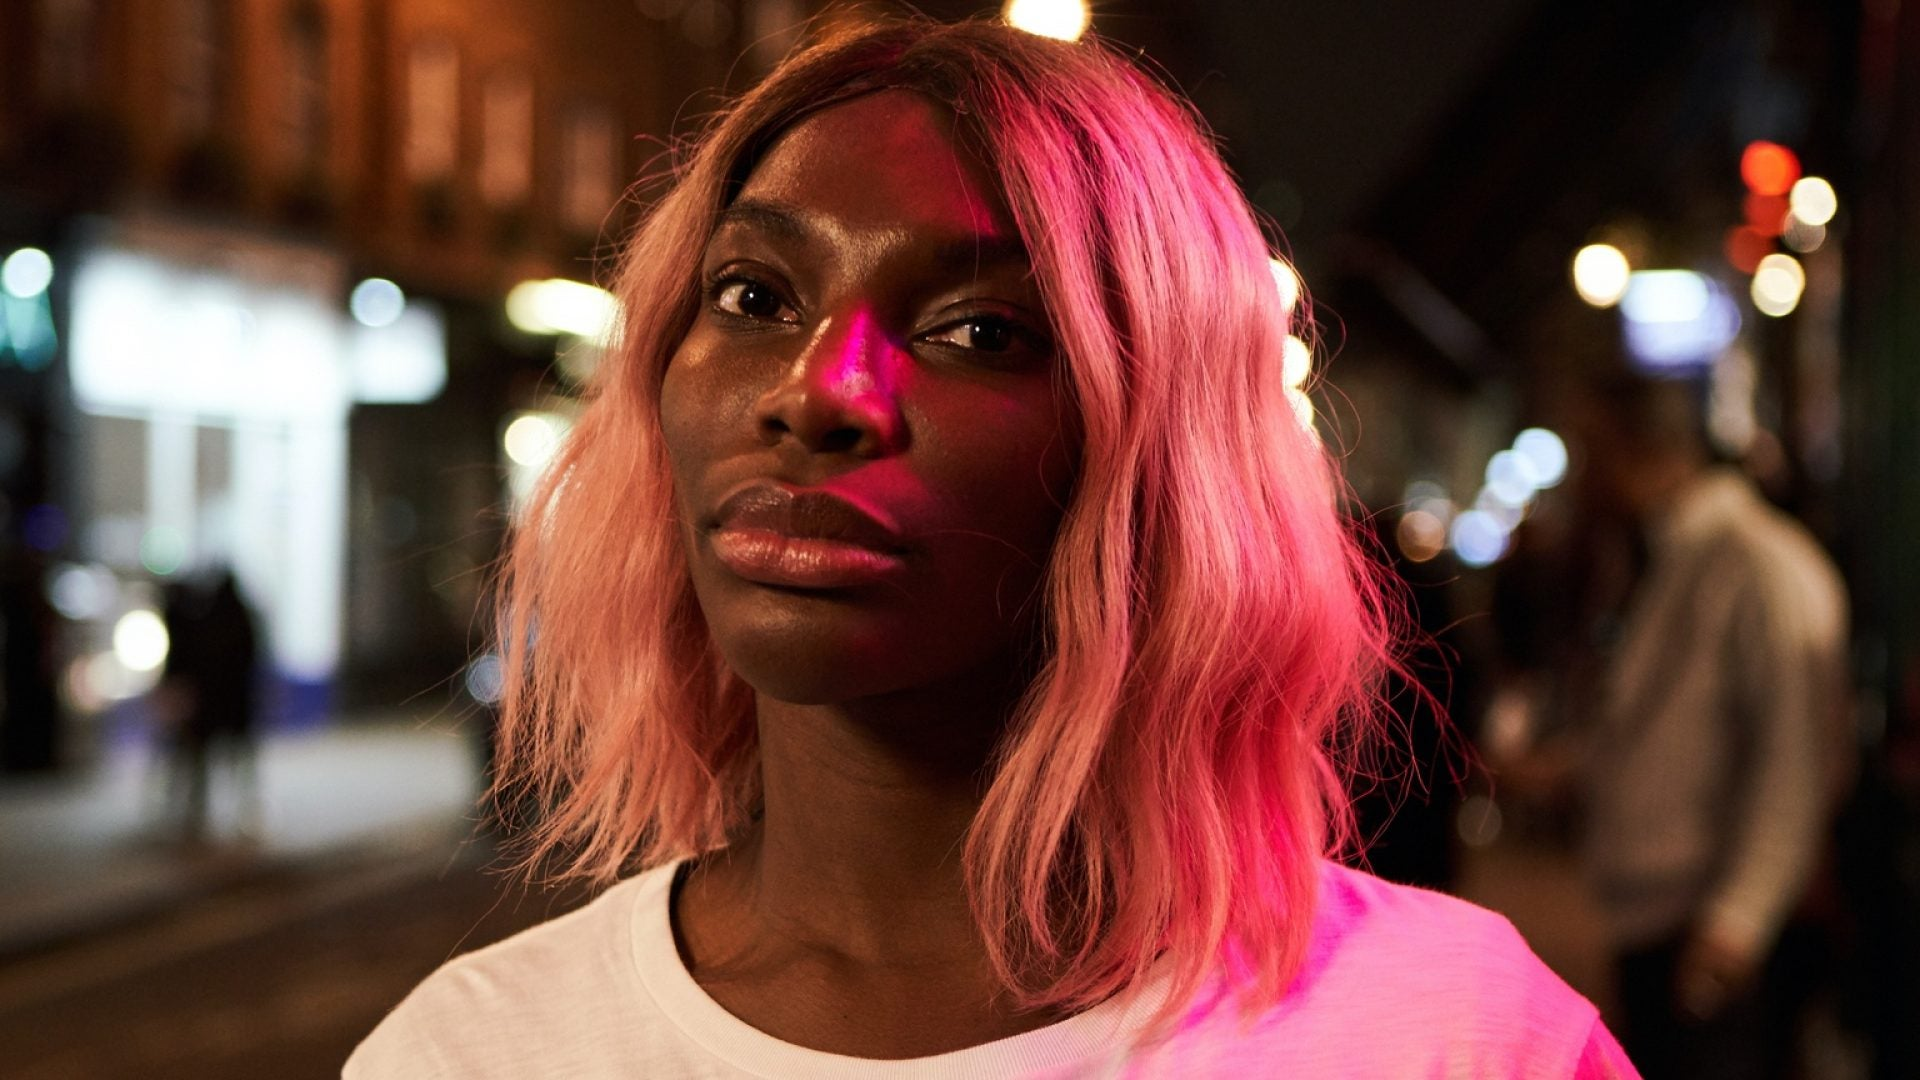 Michaela Coel Creates And Stars In Her Sexual Assault Inspired Series 'I May Destroy You'